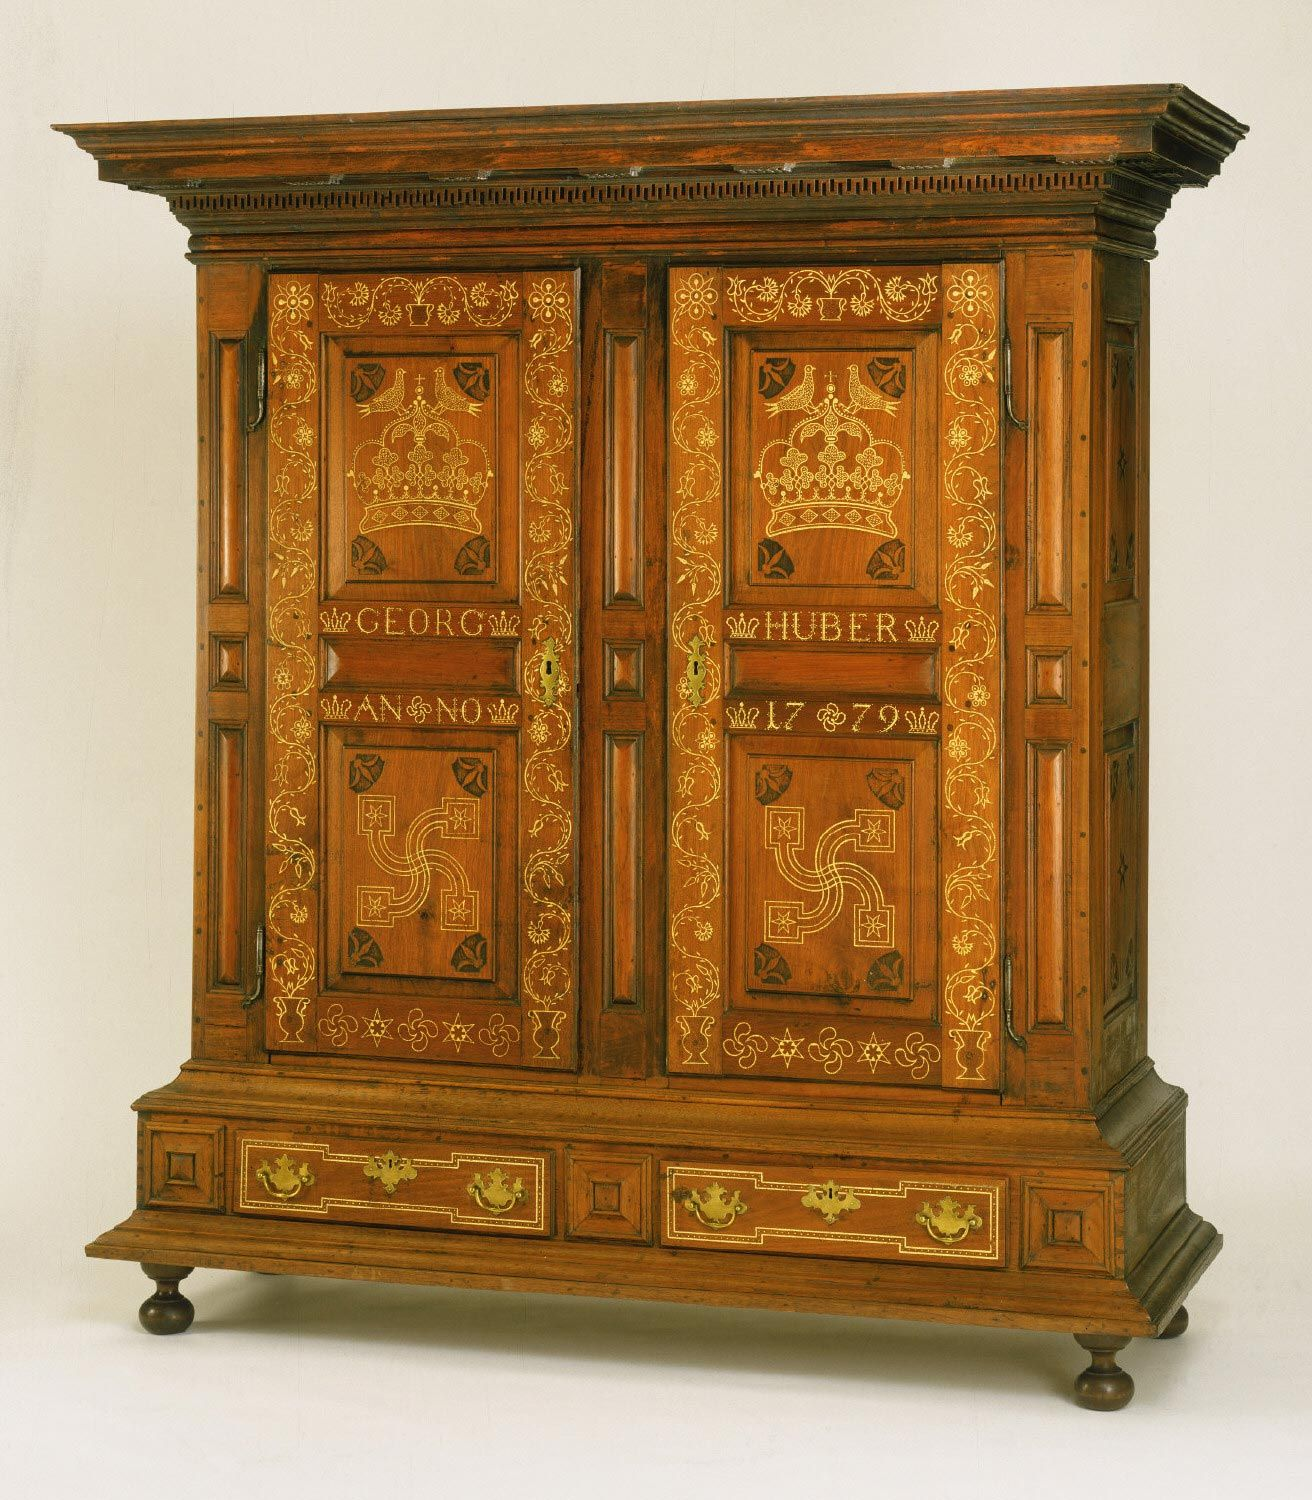 Wardrobe Kleiderschrank American Antiques Philadelphia Museum Of Art Pennsylvania German